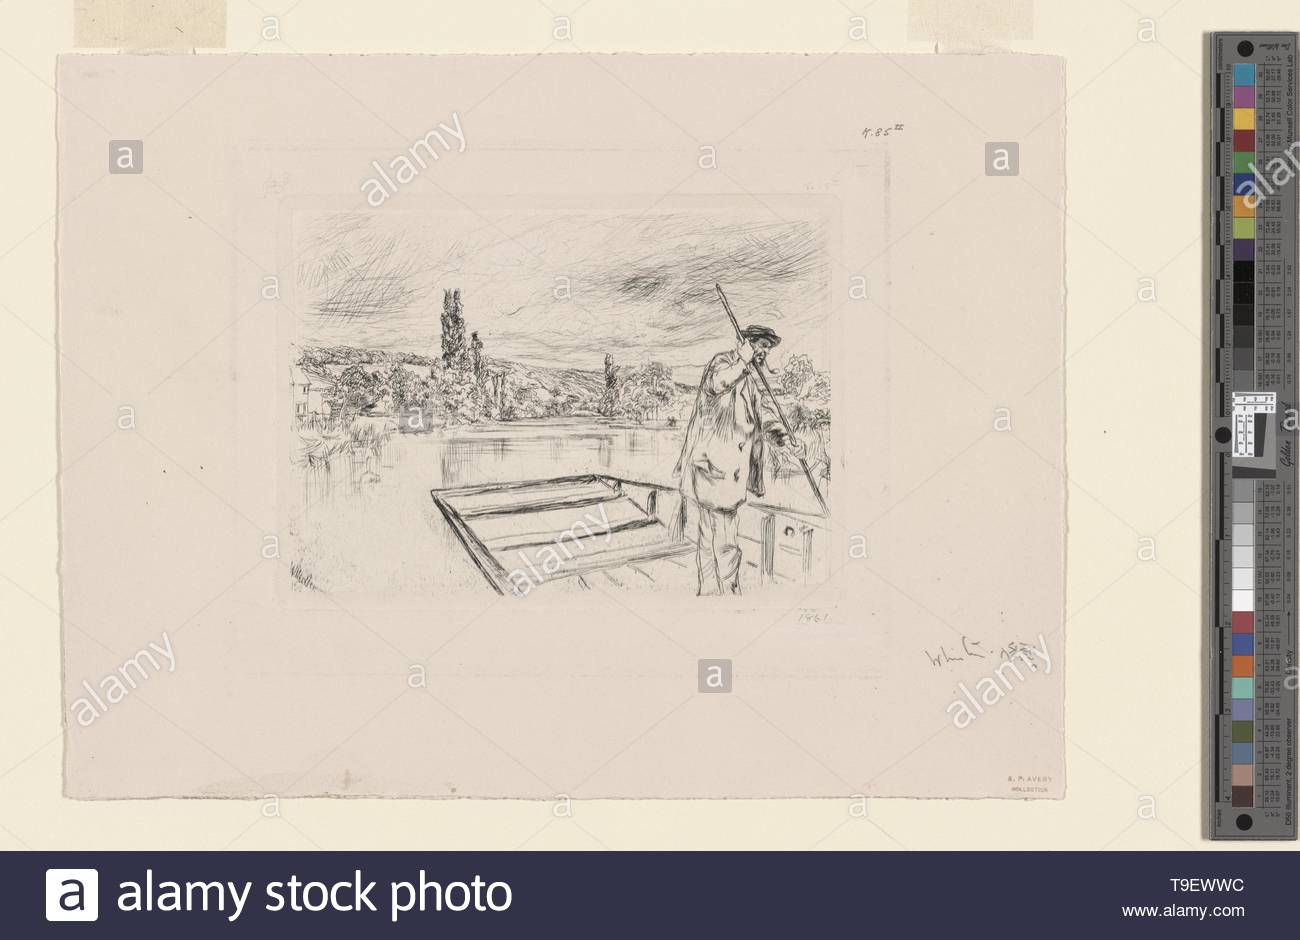 Whistler,JamesMcNeill(1834-1903)-The punt - Stock Image